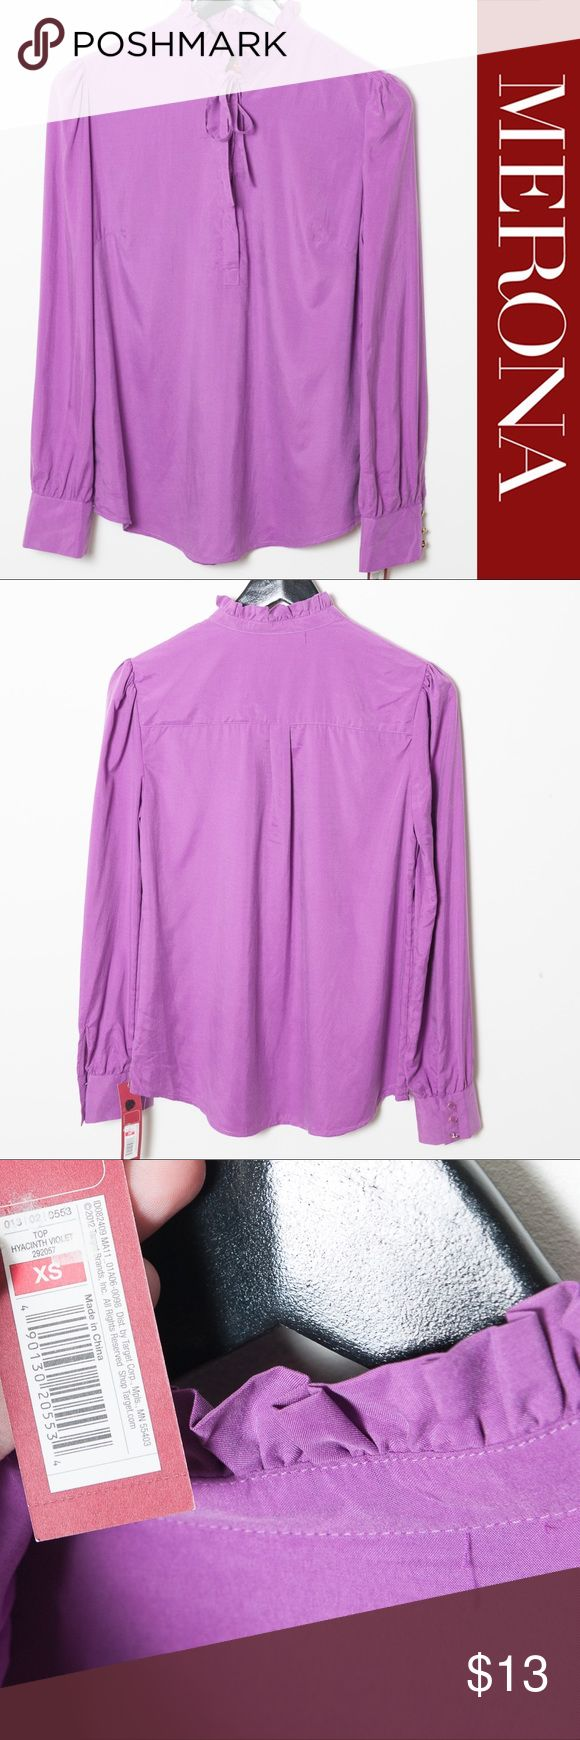 NWT Merona Long Sleeve Top Violet XS New with tags XS Merona top in Hyacinth Violet (purple). Long sleeves with three buttons on each sleeve. Ruffle neck with bow and buttons. 68% modal, 32% polyester. Machine wash cold, gentle cycle. Tumble dry low, cool iron if needed. Merona Tops Blouses